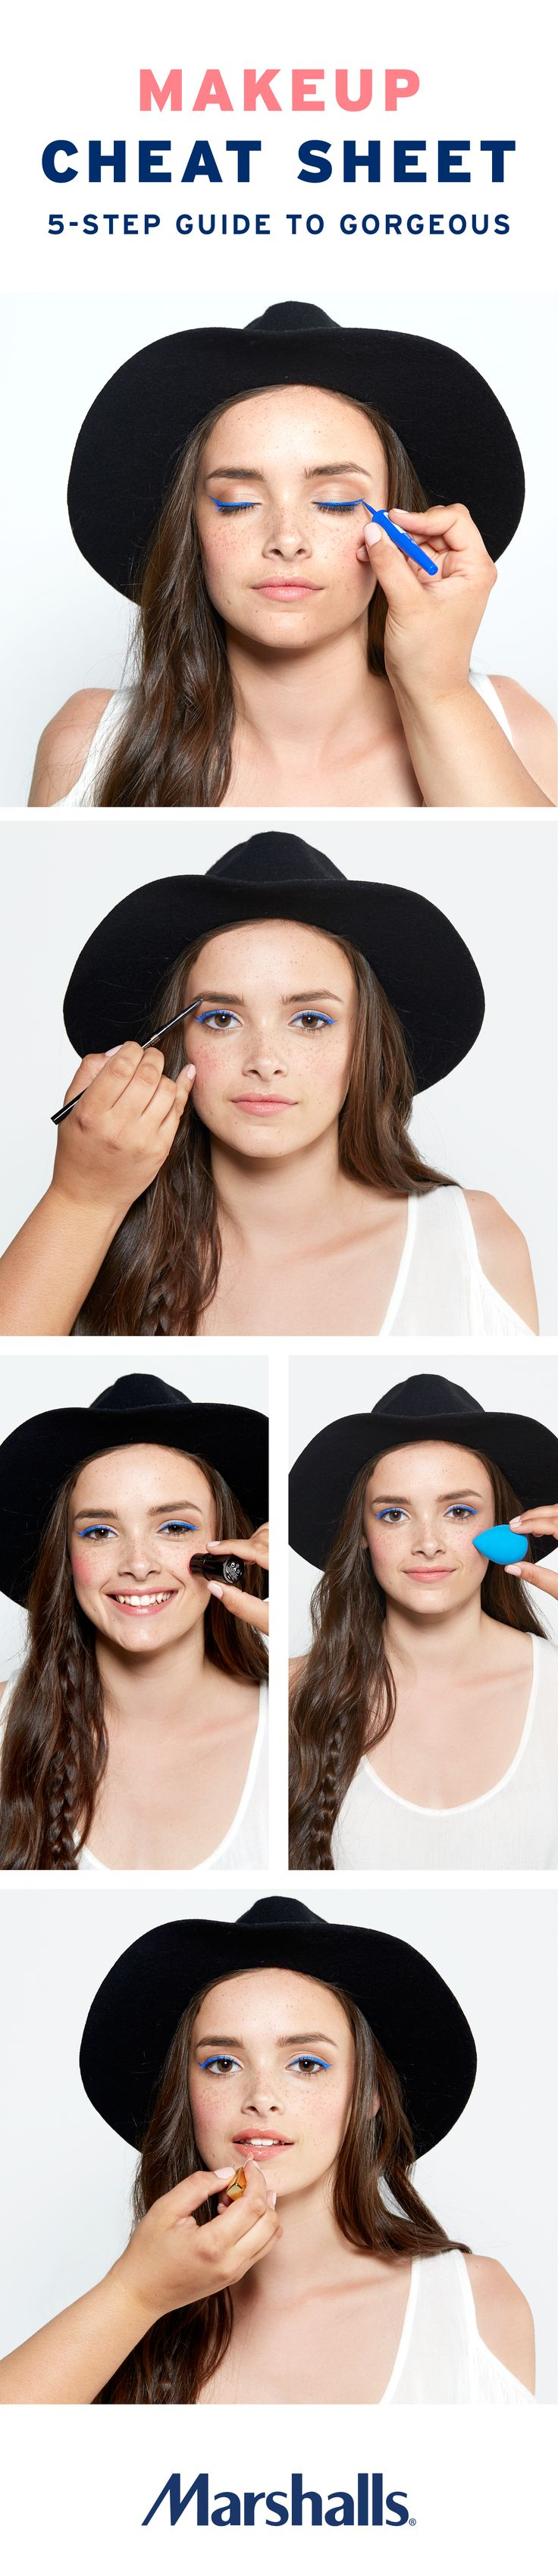 17 Best images about Get Your Glam On on Pinterest